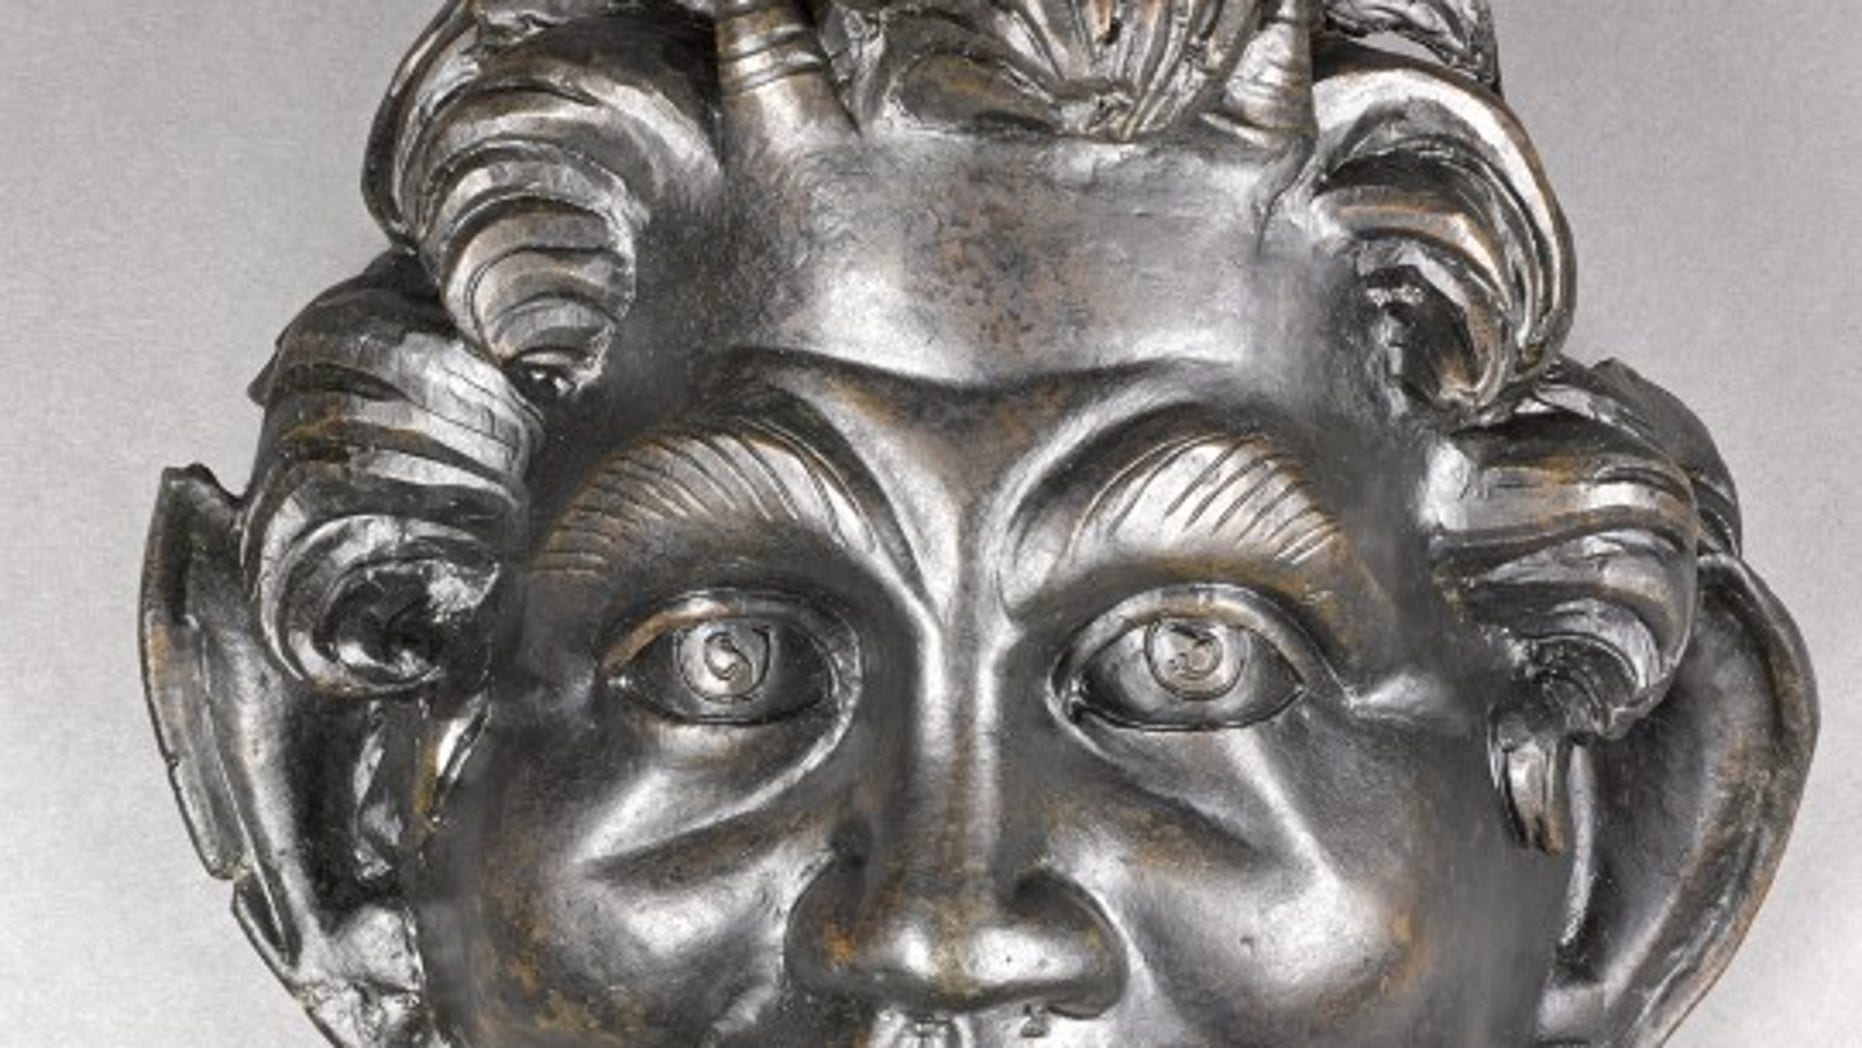 The bronze mask of Pan discovered near Hippos is unusually large compared to other such bronze masks of the Greek God that date from the same period.